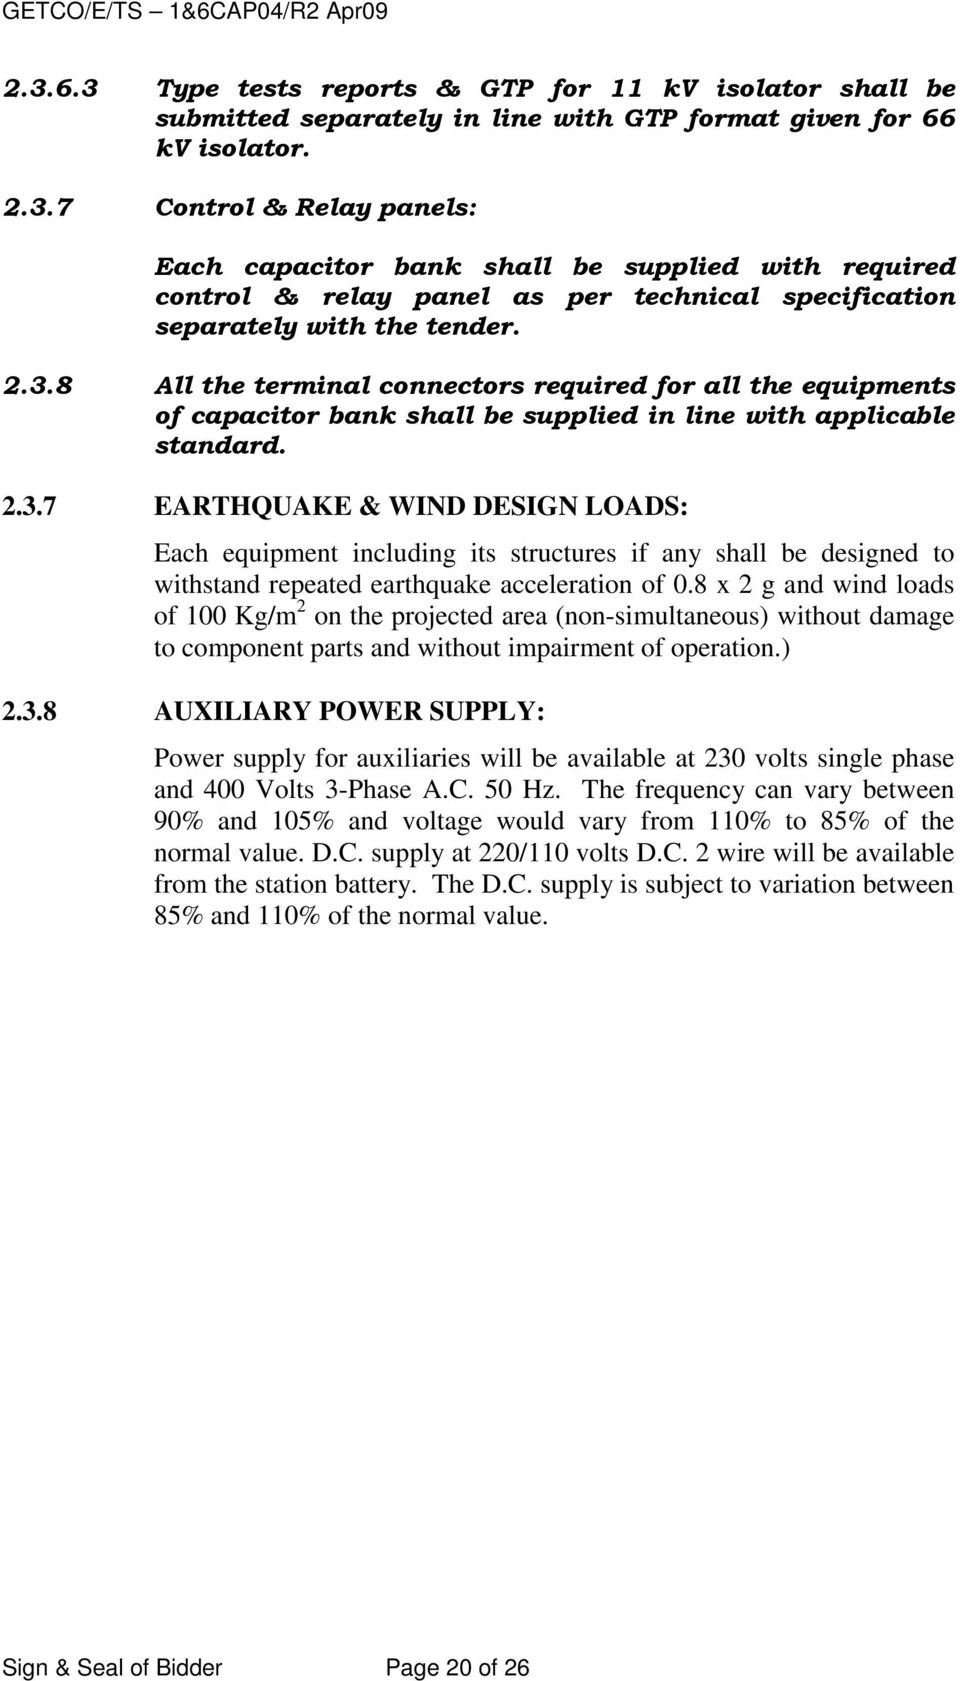 11 Kv 66 Static Shunt Capacitor Bank Pdf Show The Schematic Diagram Of Series And 8 X 2 G Wind Loads 100 Kg M On Projected